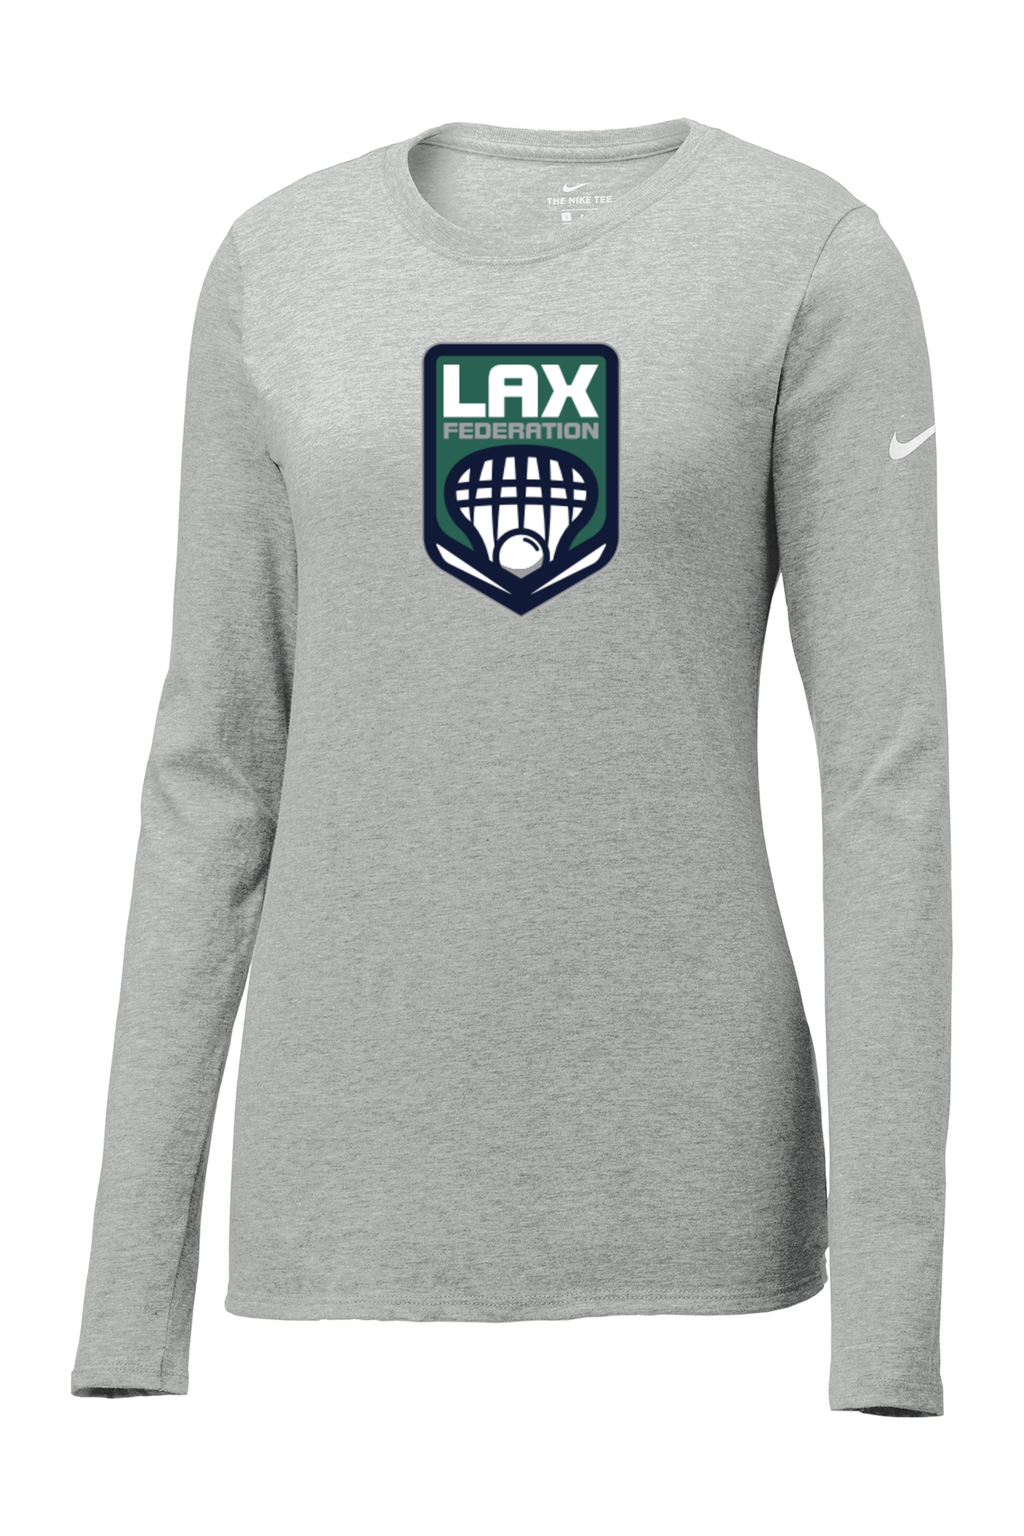 LAX FED Nike Ladies Core Cotton Long Sleeve Tee